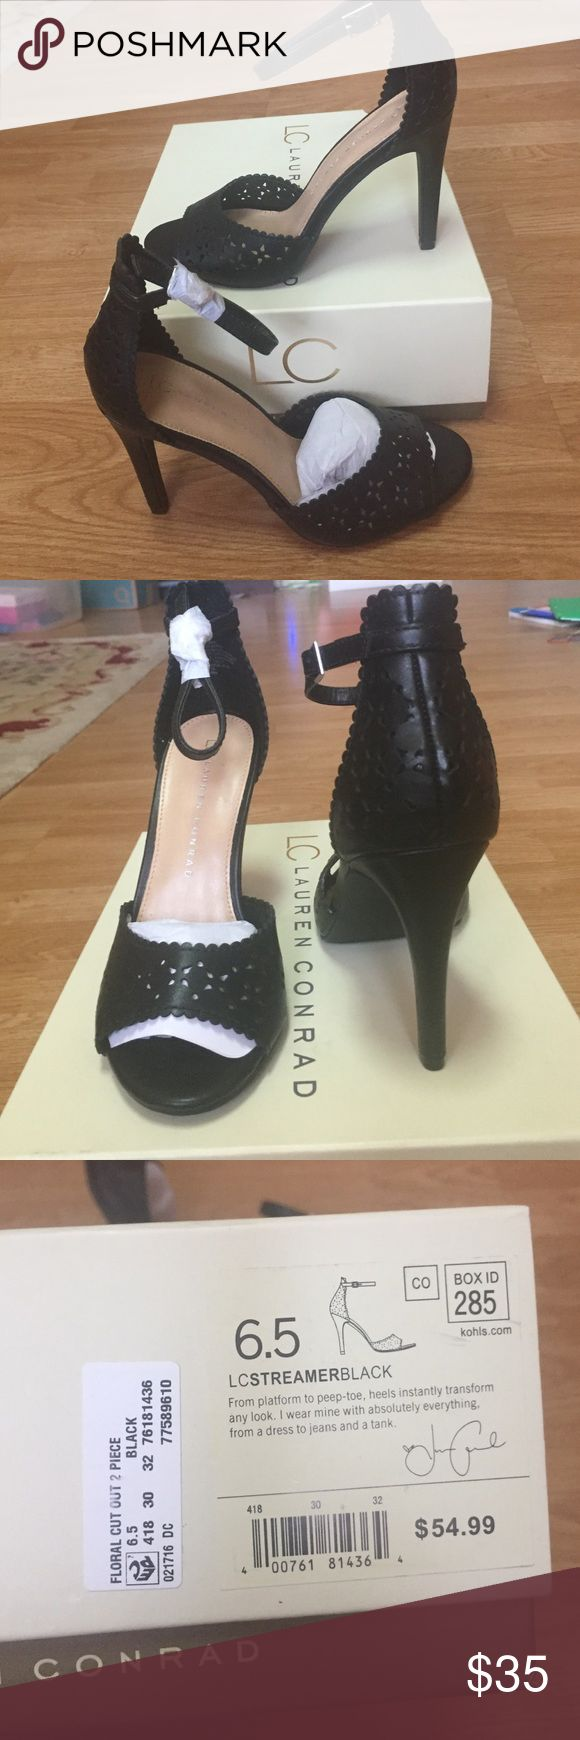 "NWT LC Sexy Pumps Super cute and sexy perforated design pumps. Perfect to wear dressy or in jeans. 4"" heel. LC Lauren Conrad Shoes Heels"